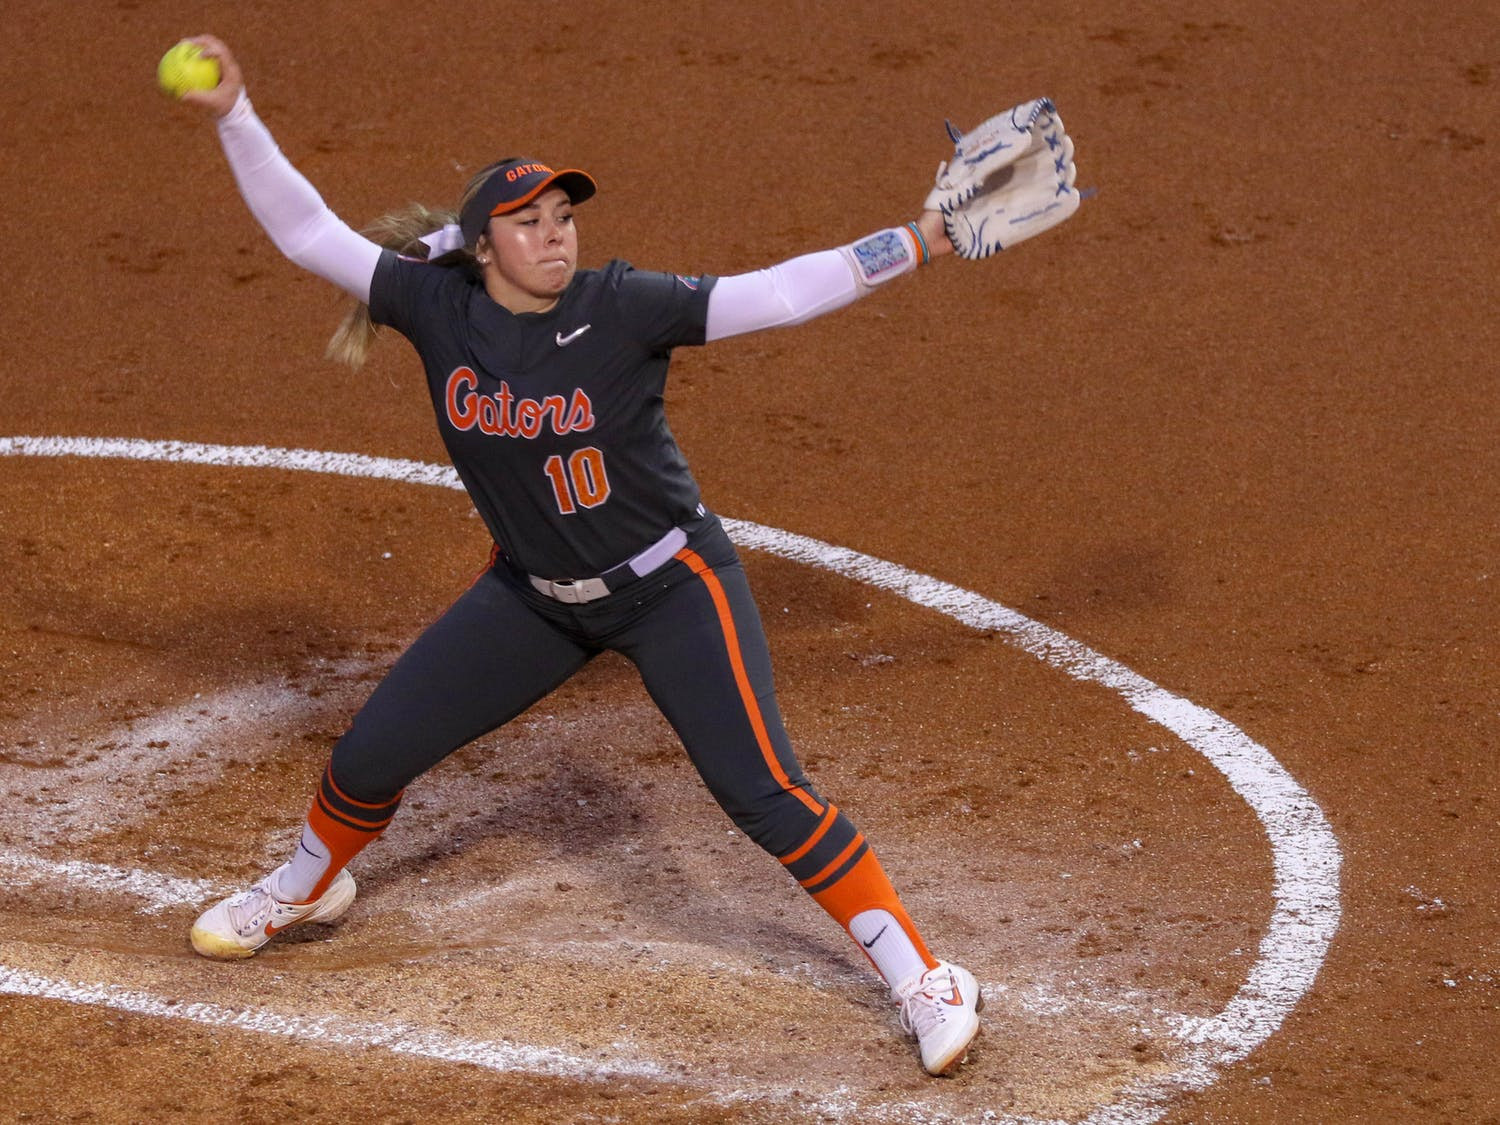 Natalie Lugo tallied 22 strikeouts over the weekend.